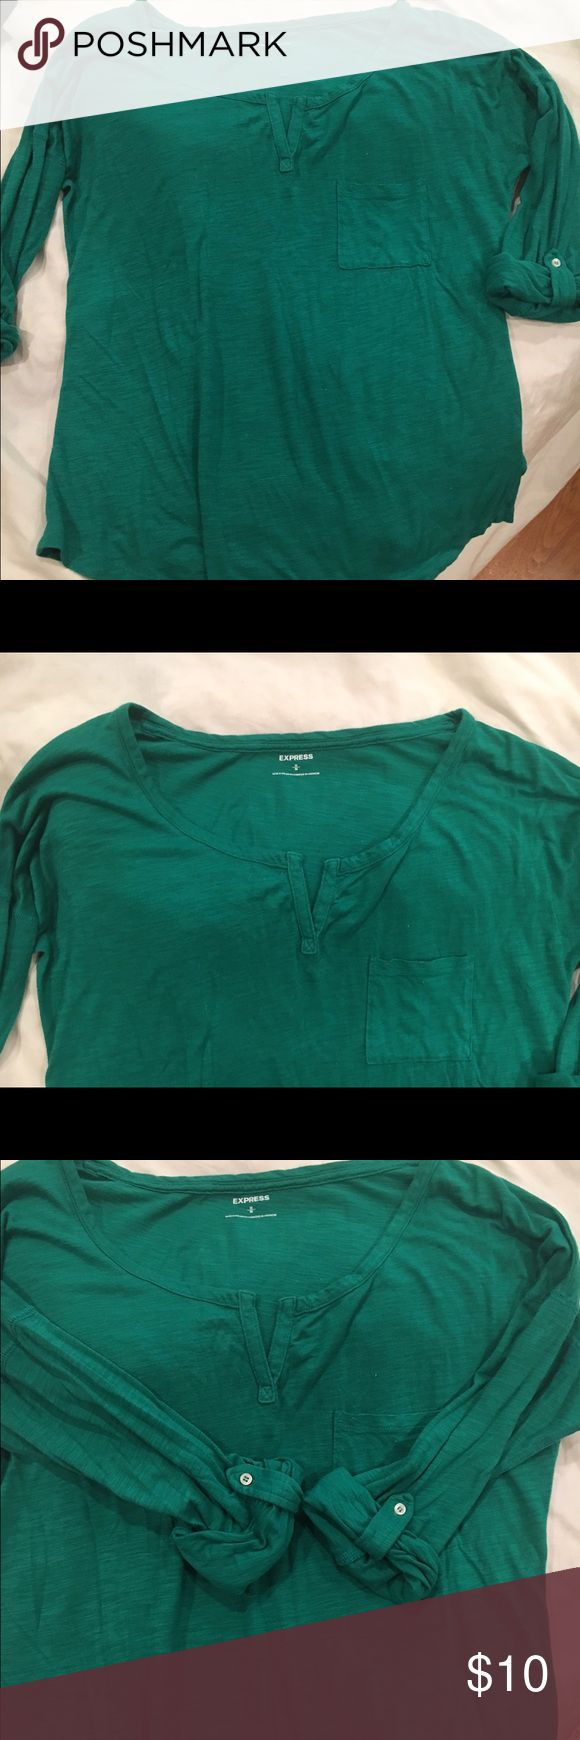 Express long sleeve shirt- folded sleeves Express long sleeve shirt- folded sleeves. Size medium. Pocket on shirt. Long shirt, darker green color, in great condition Express Tops Blouses